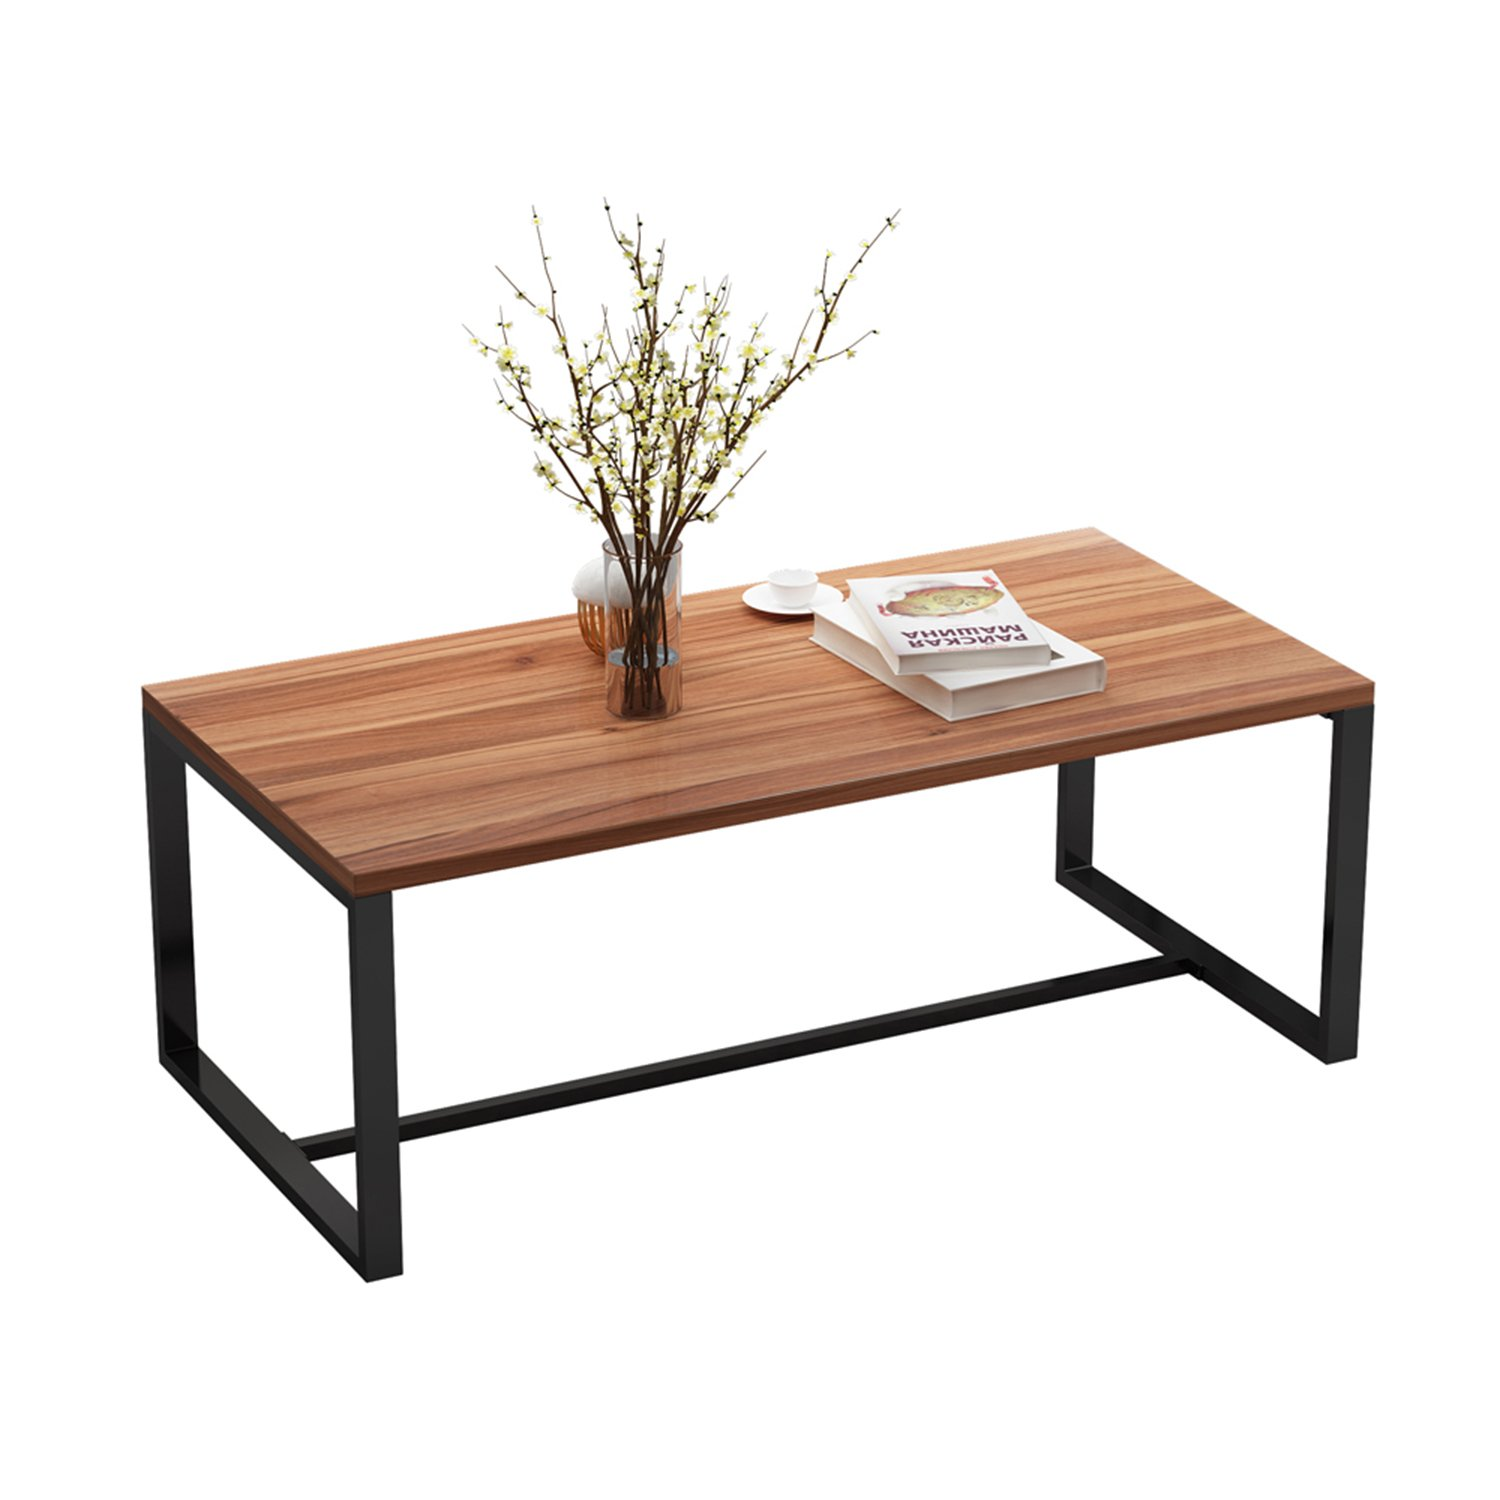 Decho Vintage Coffee Table, Cocktail Table for Living Room, Home Office Furniture with Metal Frame, OAK BROWN+ Black Leg